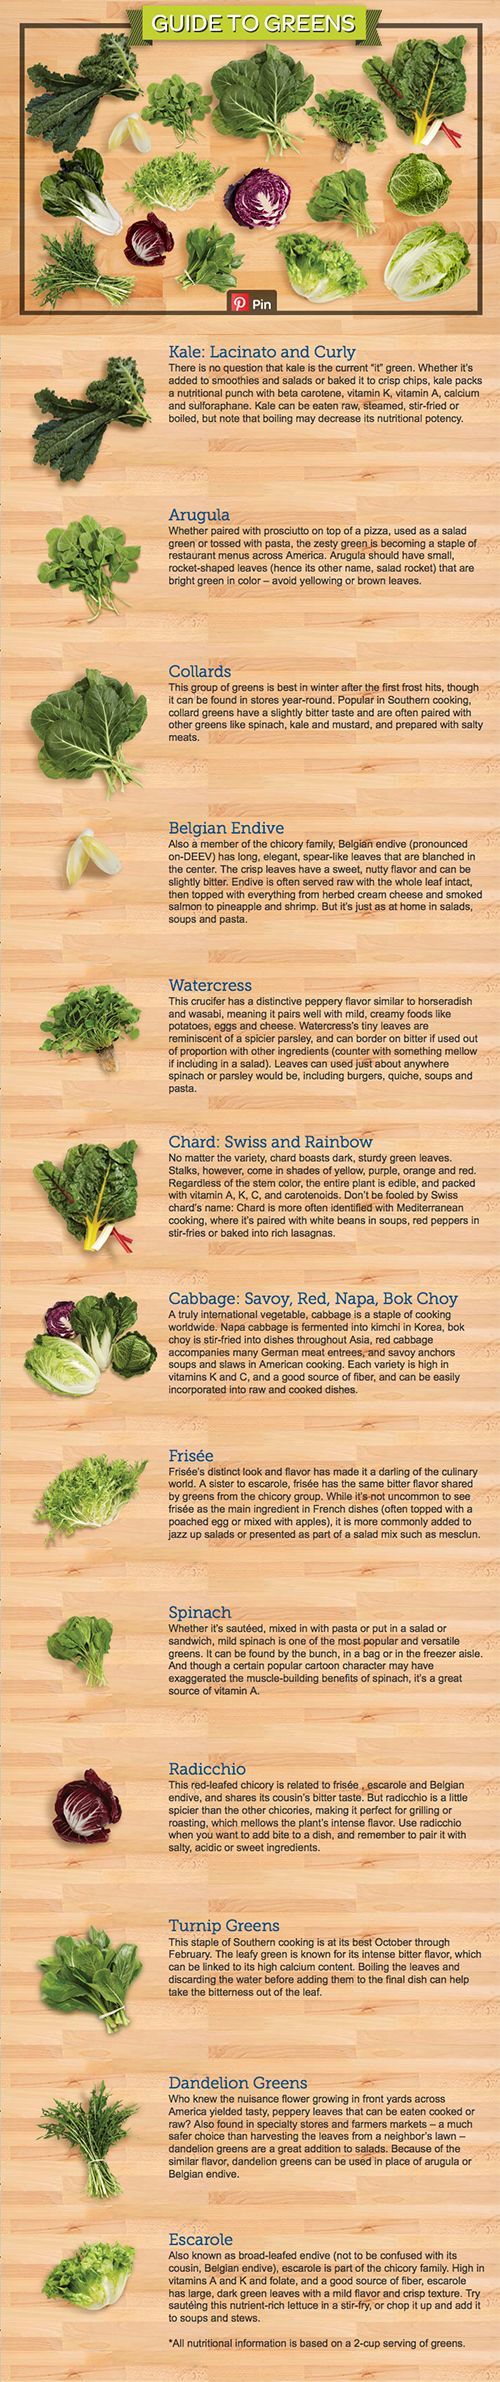 Guide to Greens......Confused by kale? Flustered by frisée? Use this greens cheat sheet to differentiate your farmers market finds and learn the nutritional benefits of all those leafy lovelies.